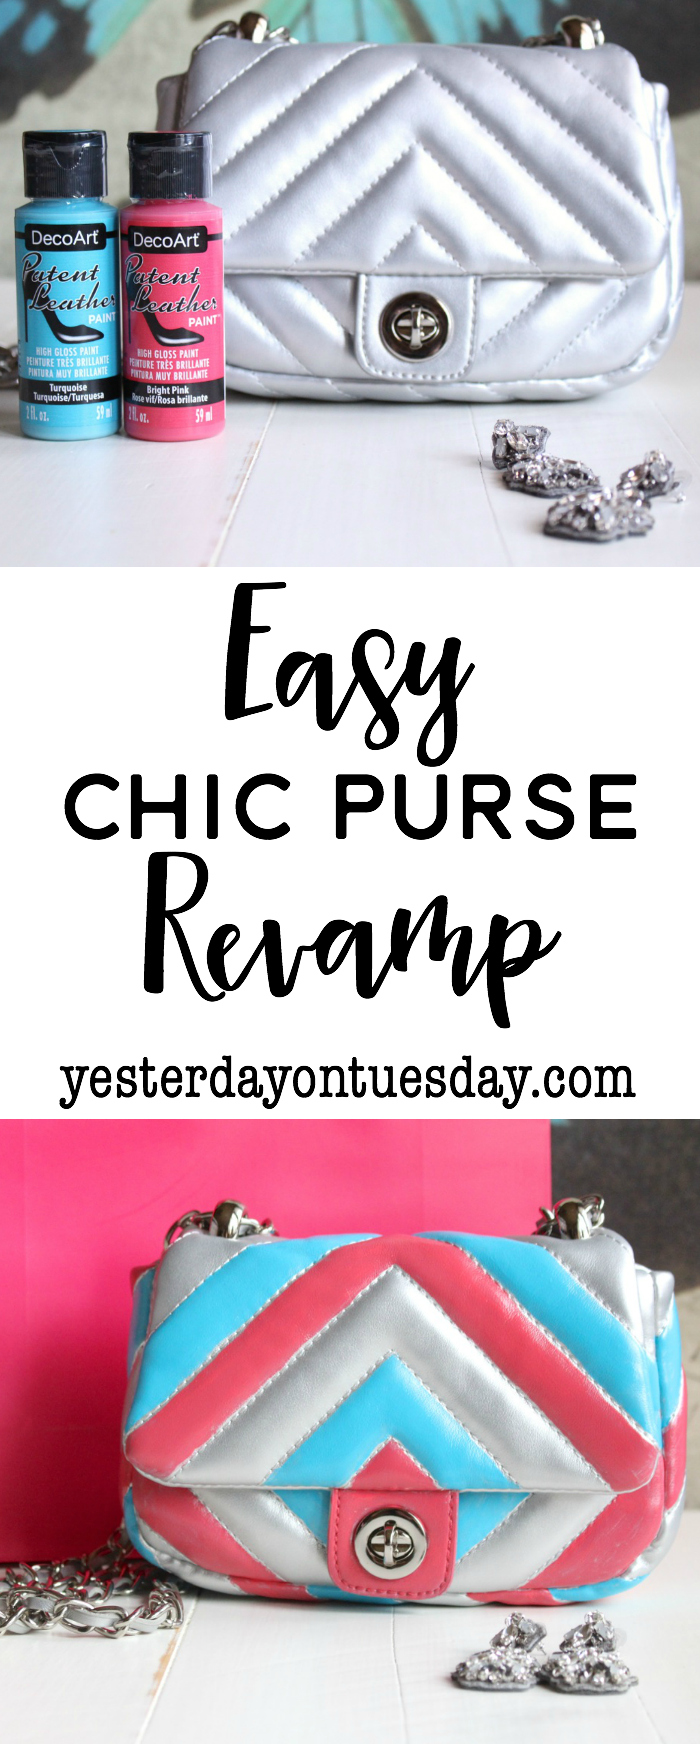 Easy Chic Purse Revamp: How to transform a plain purse into a chic handbag for spring with paint. Amazing results! Great for recycling or upcycling a worn leather purse into a fresh look!